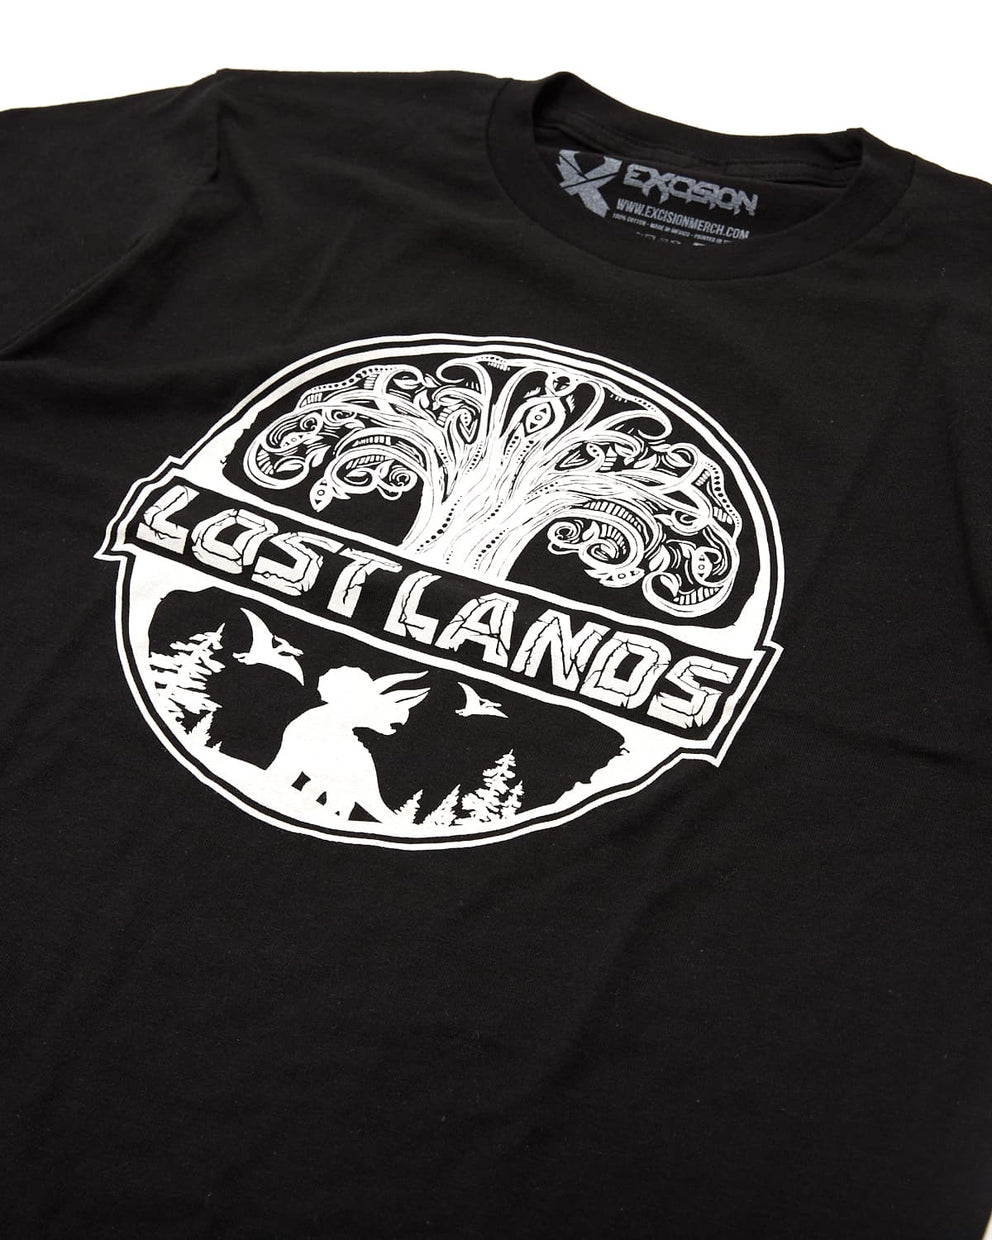 Official Lost Lands 2019 Lineup T-Shirt - Black/White